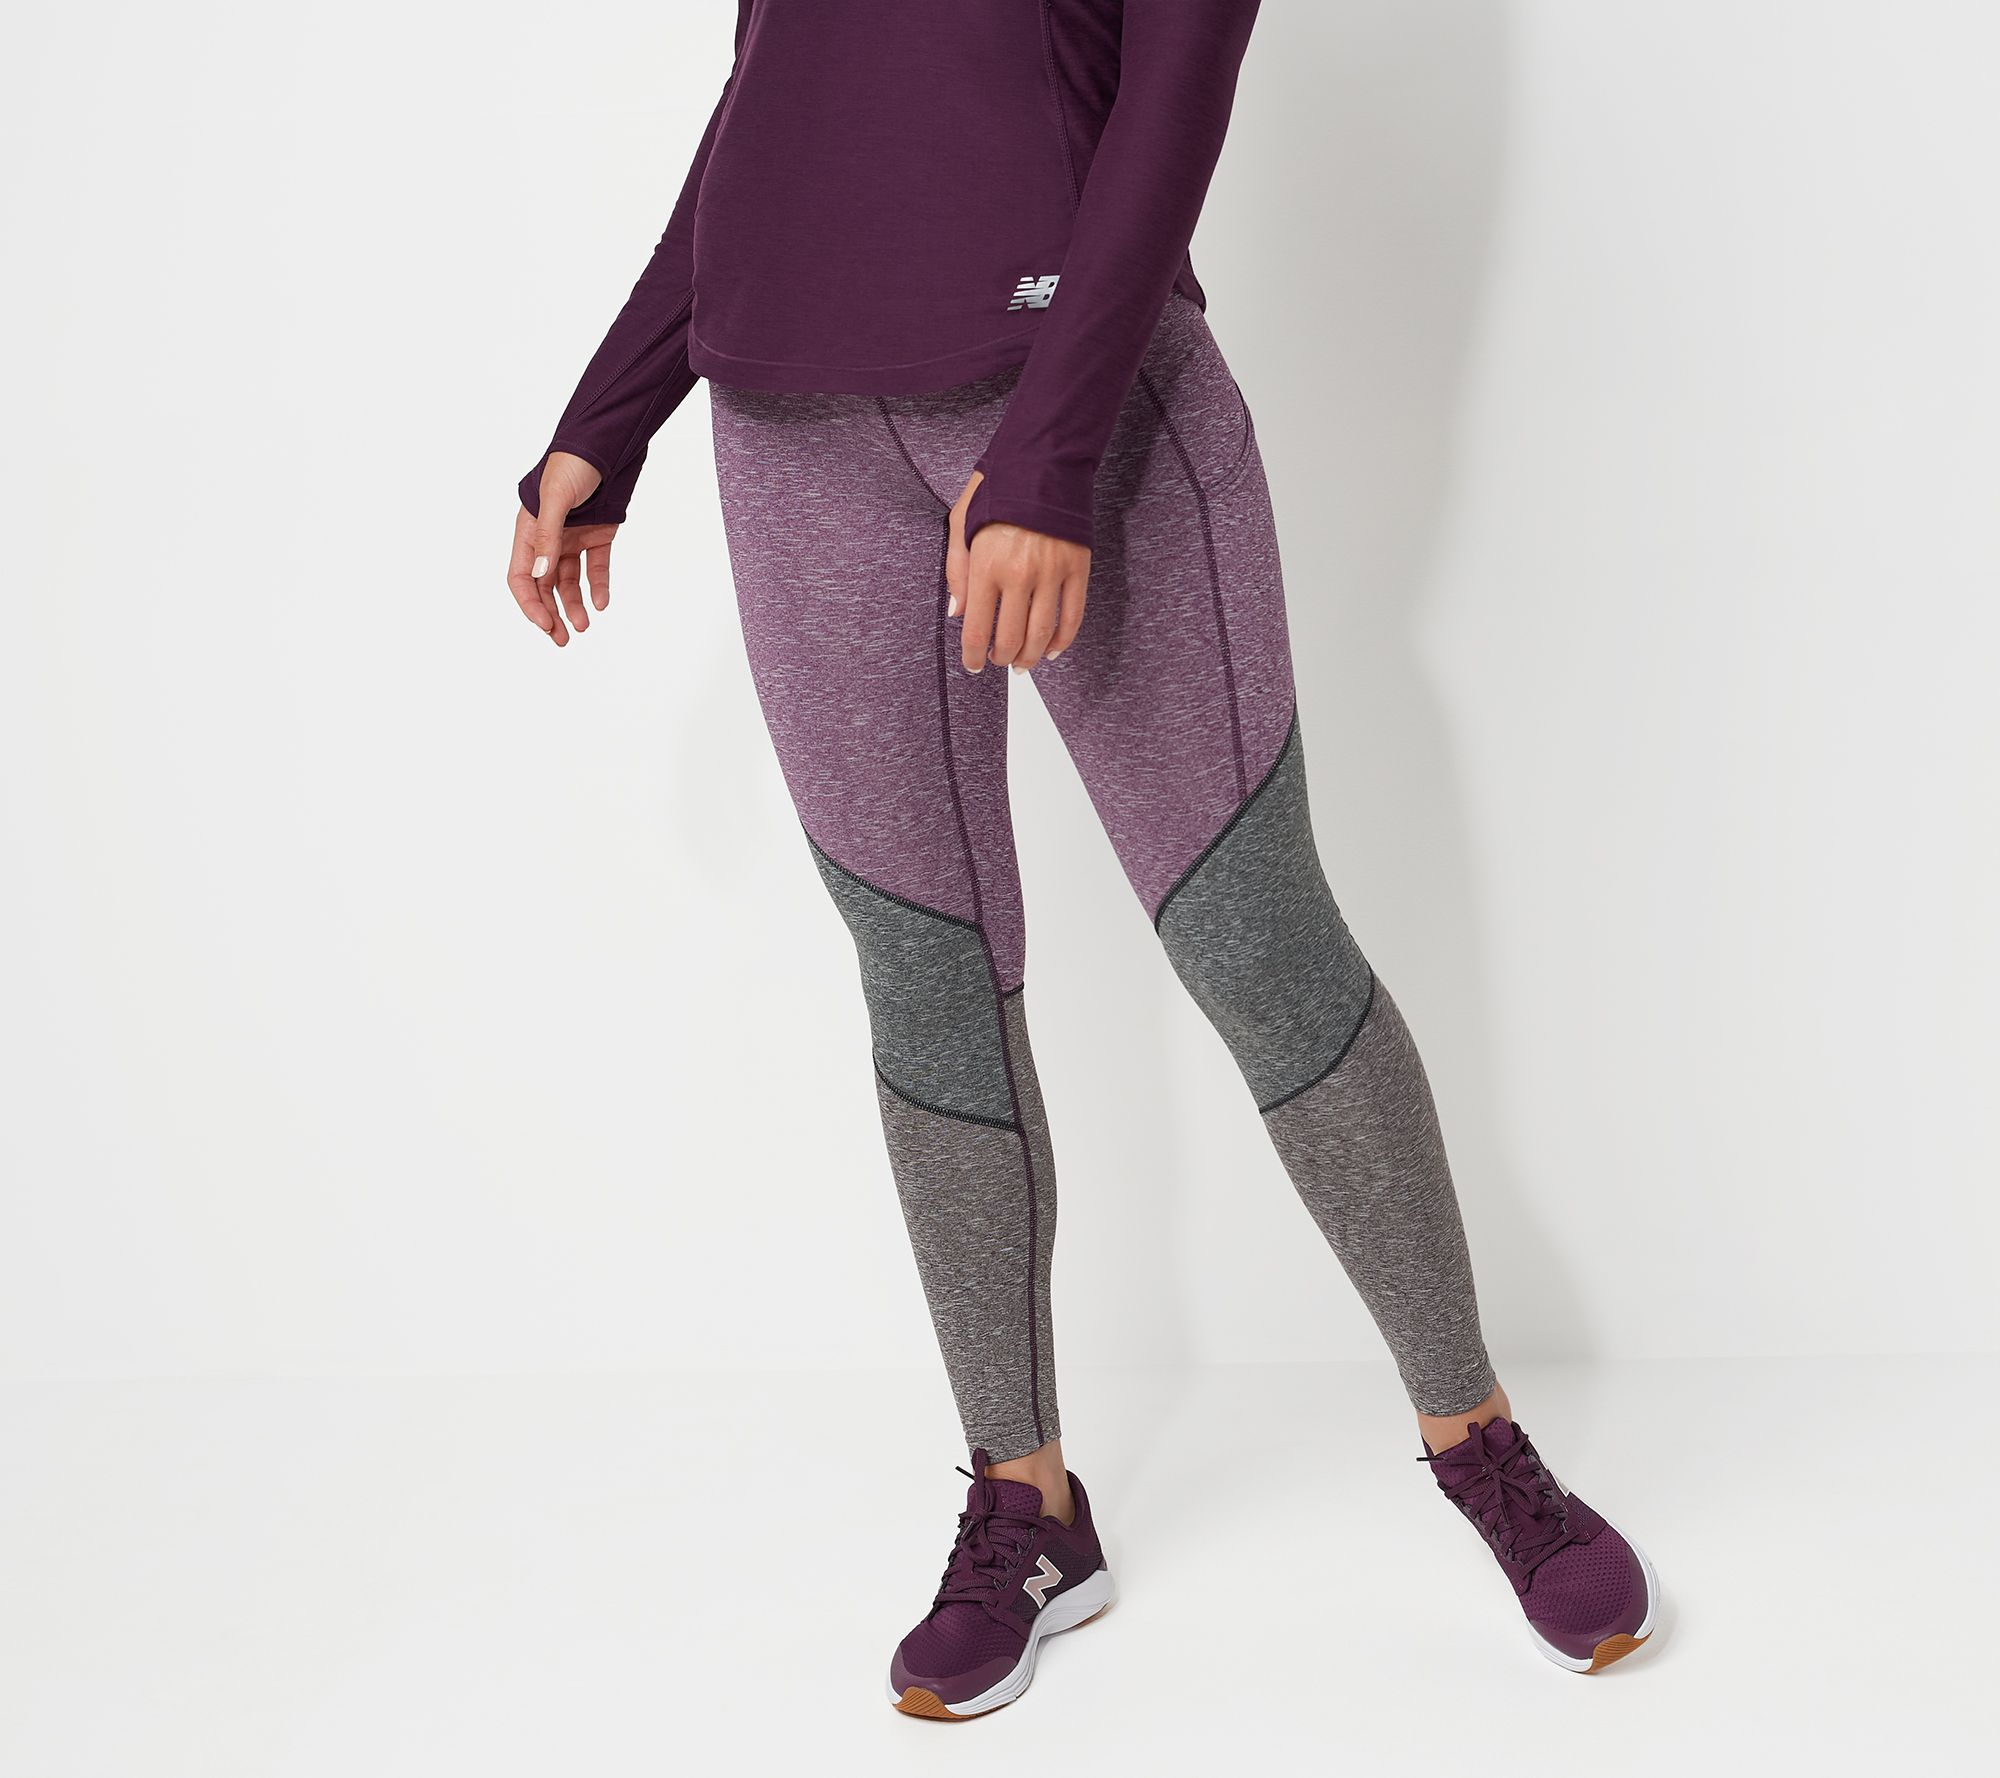 Stay comfortable with New Balance leggings